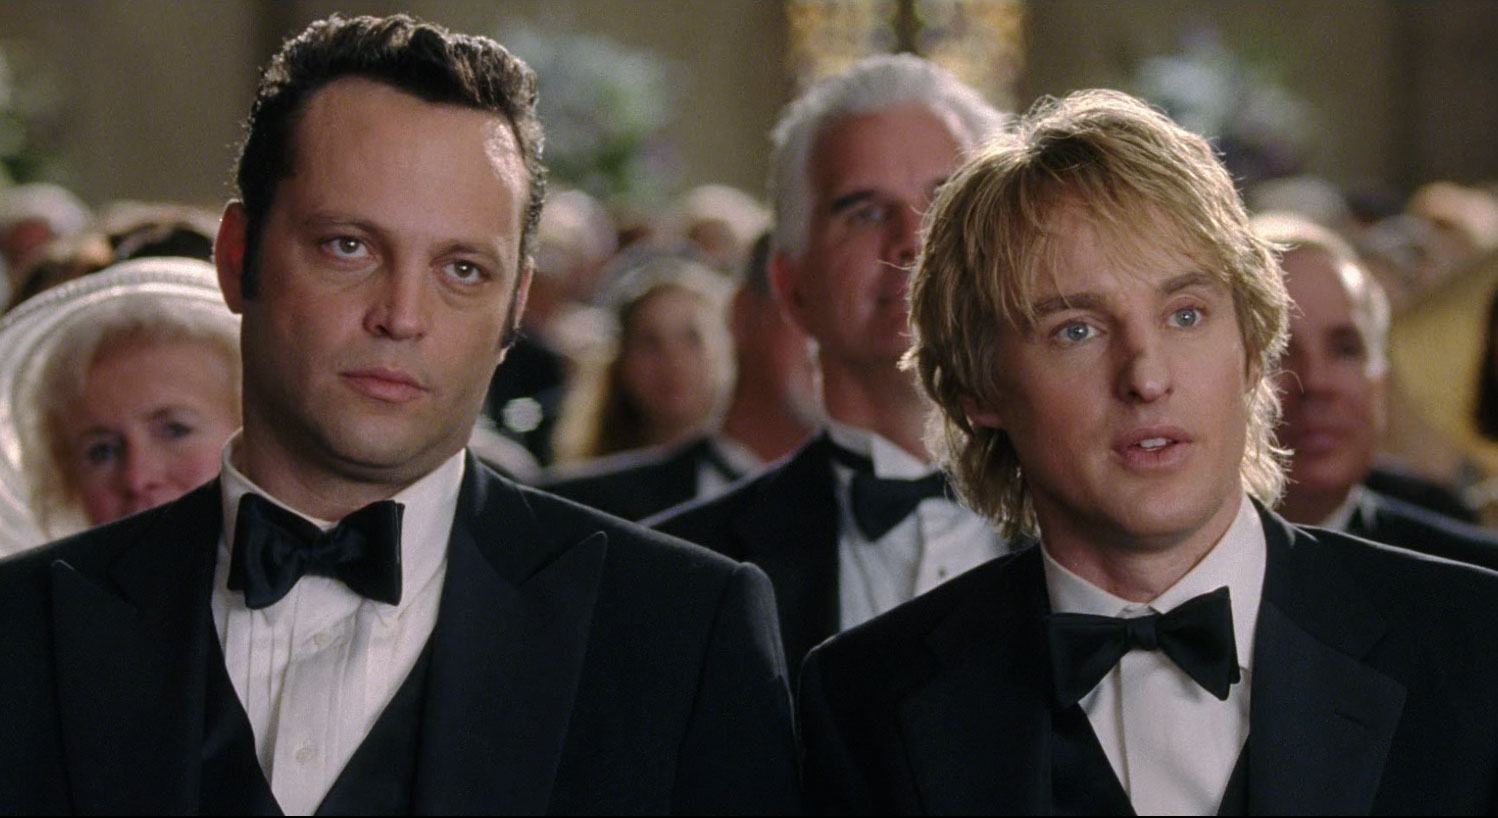 Jeremy (Vince Vaughn) and John (Owen Wilson) spend their free time crashing wedding receptions. What better way to drink for free and meet women? When the daughter of a highly recognized man is about to tie the knot, they just have to get into the reception. The tables turn on the notorious bachelors, however, when […]